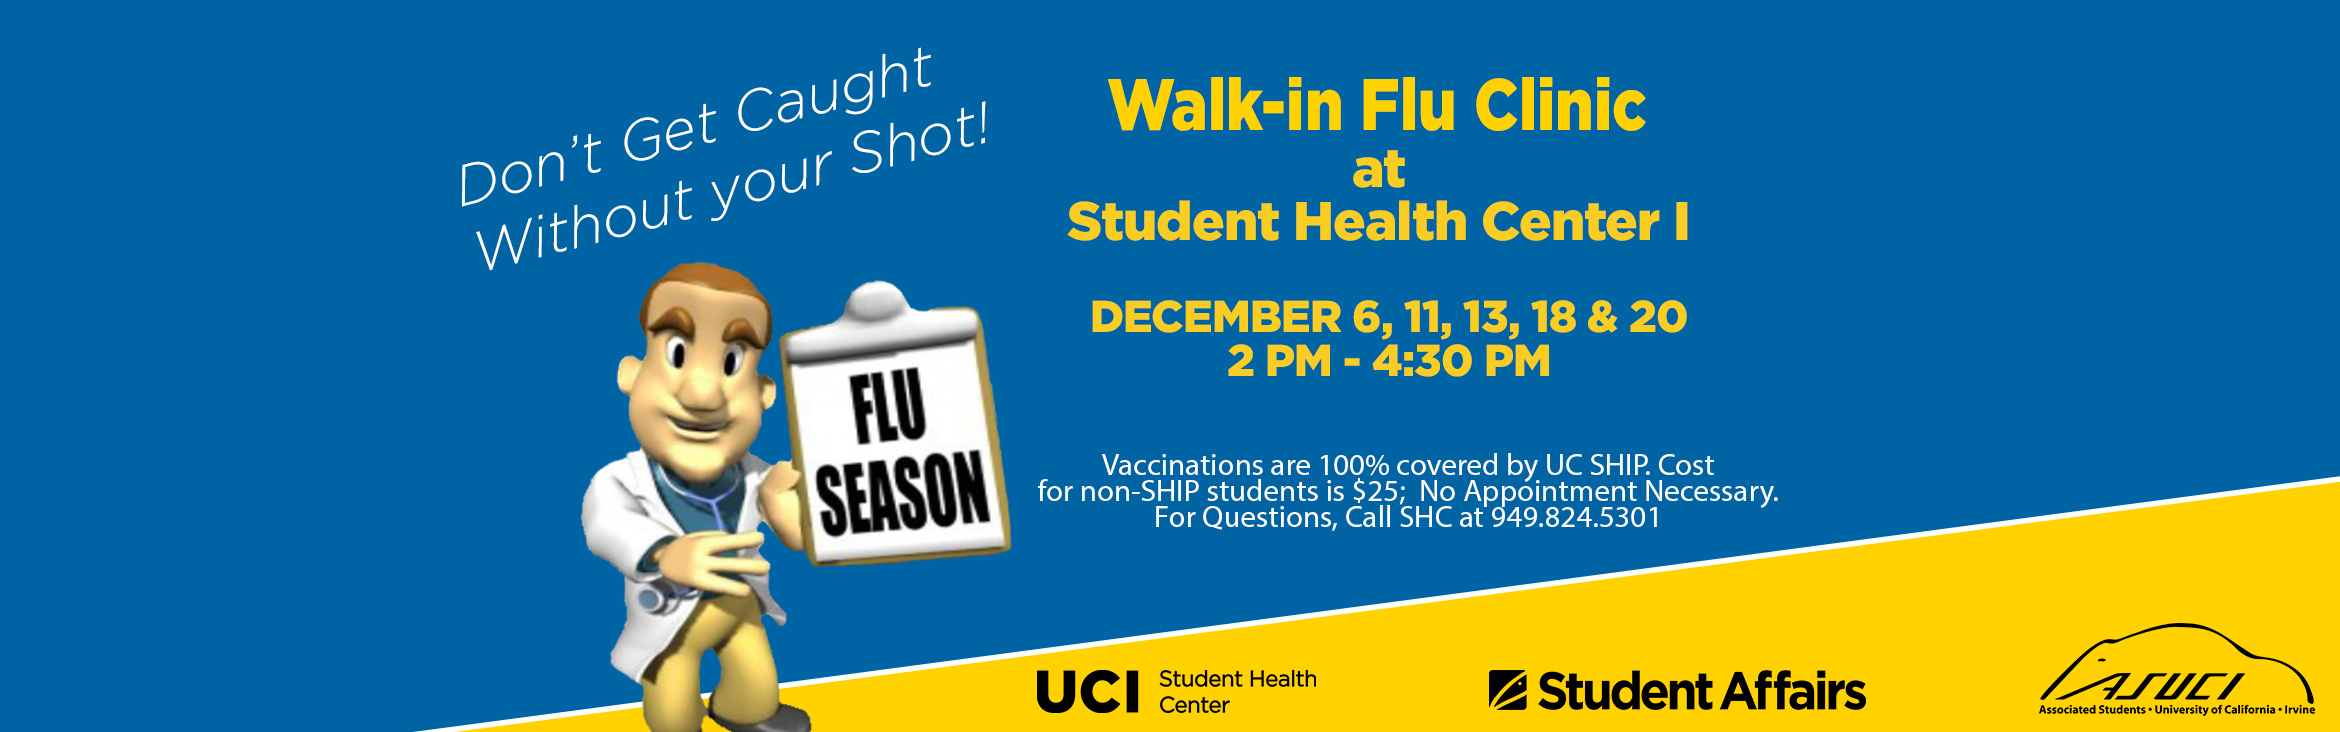 Don' Get Caught Without Your Shot! Upcoming Flu Vaccine Clinics, Walk-in Clinic Student Health Center, December 6, 11,13, 18 & 20 2:00pm - 4:30pm